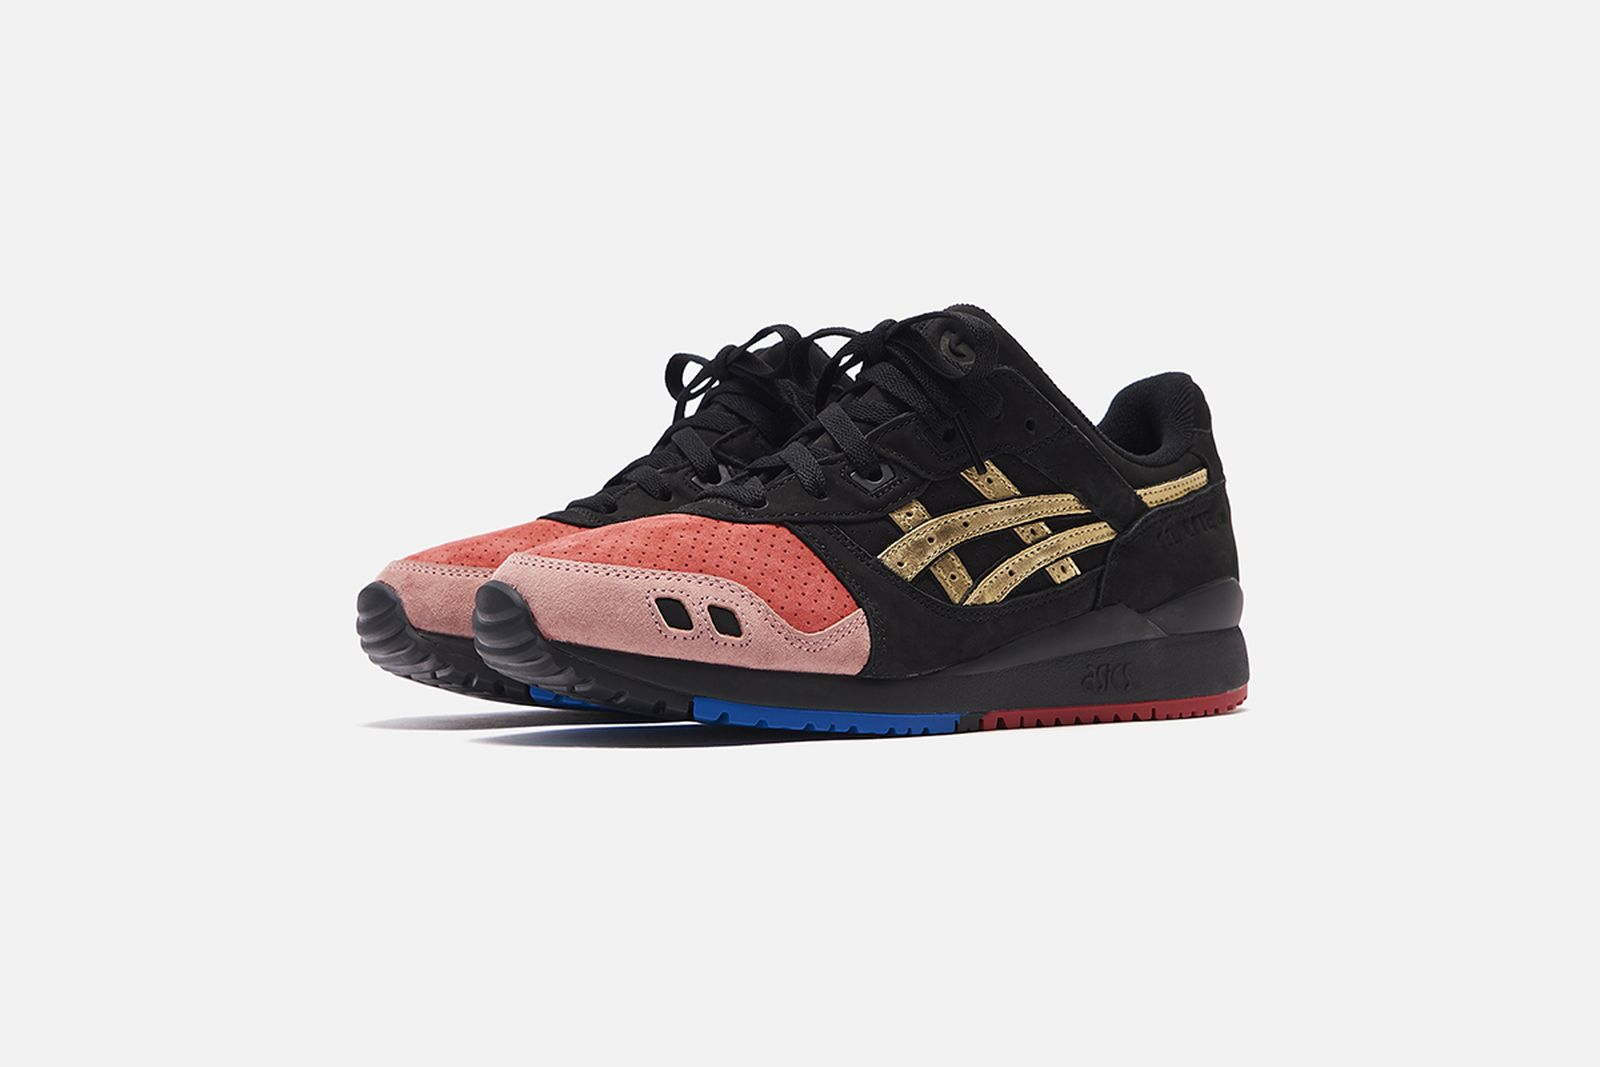 Comprensivo Prevalere In dettaglio  Ronnie Fieg x ASICS GEL-Lyte III Tokyo Trio: Official Images & Info